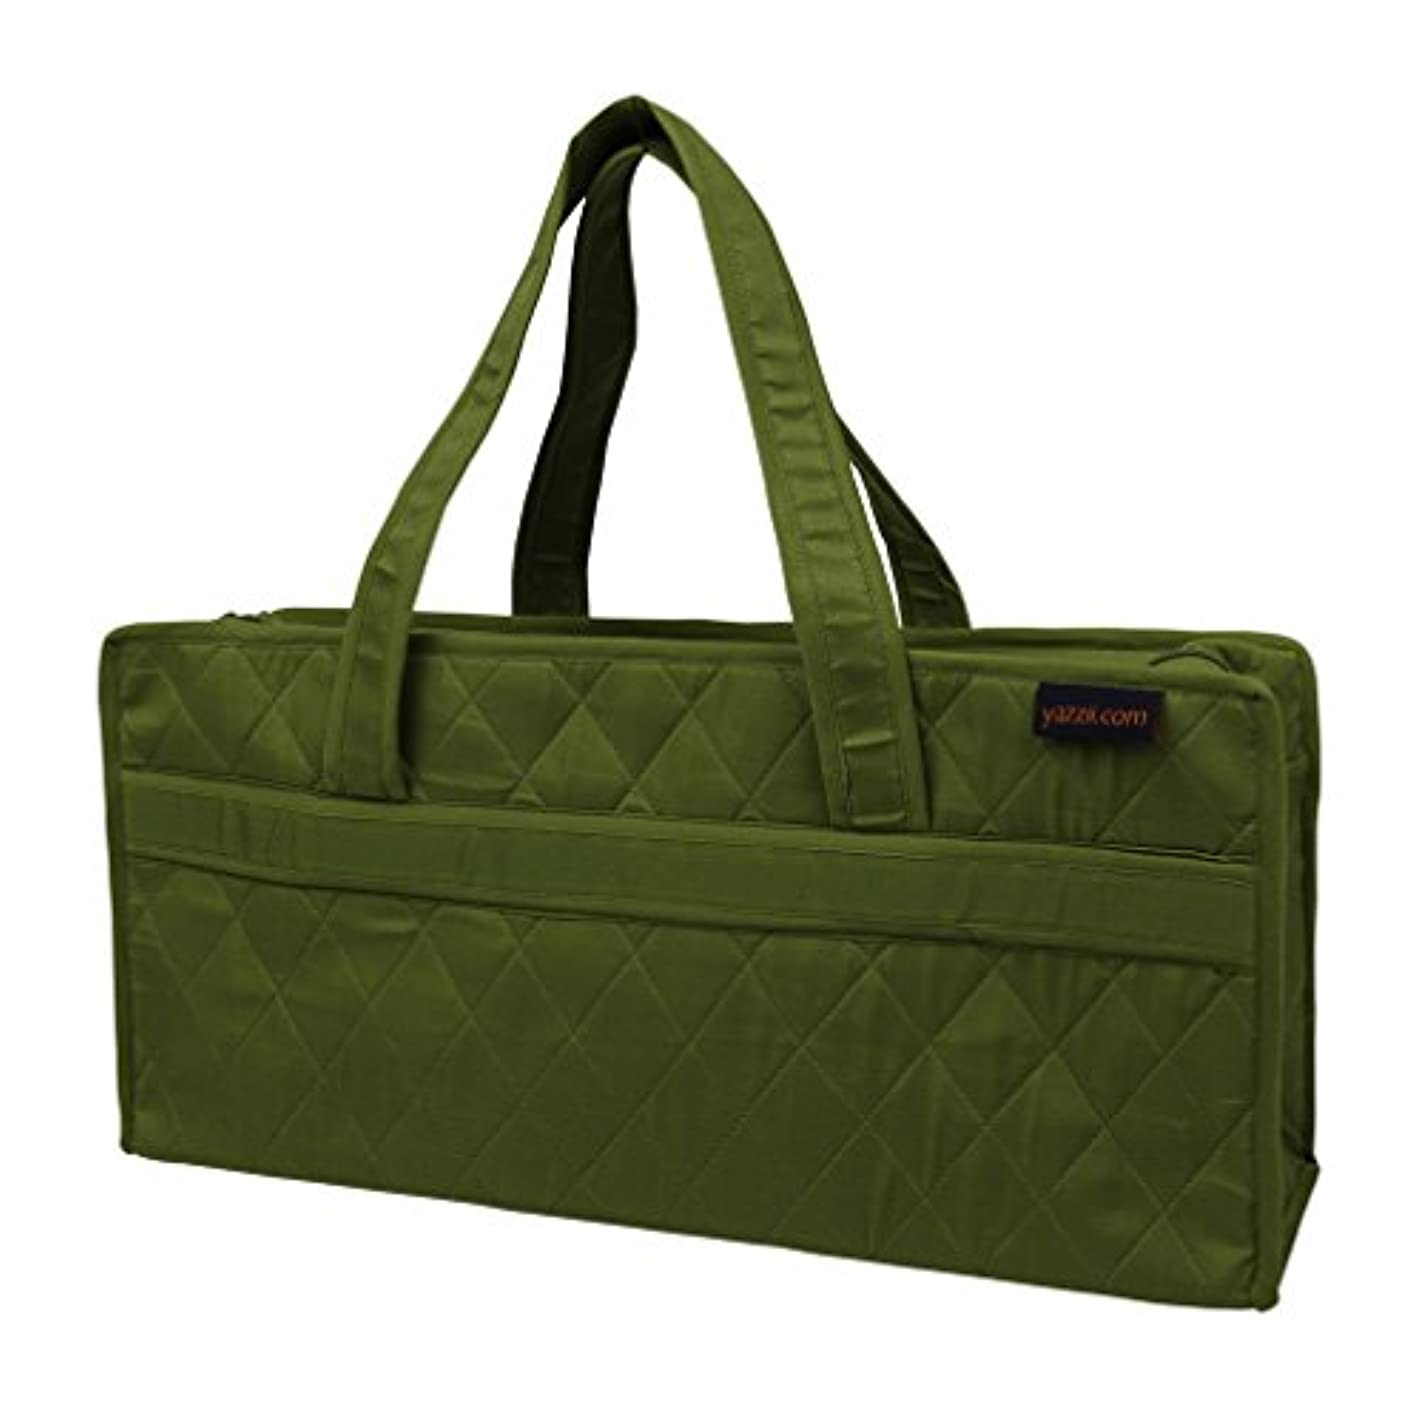 Yazzii CA 170 G Knitting Bag, Small, Green